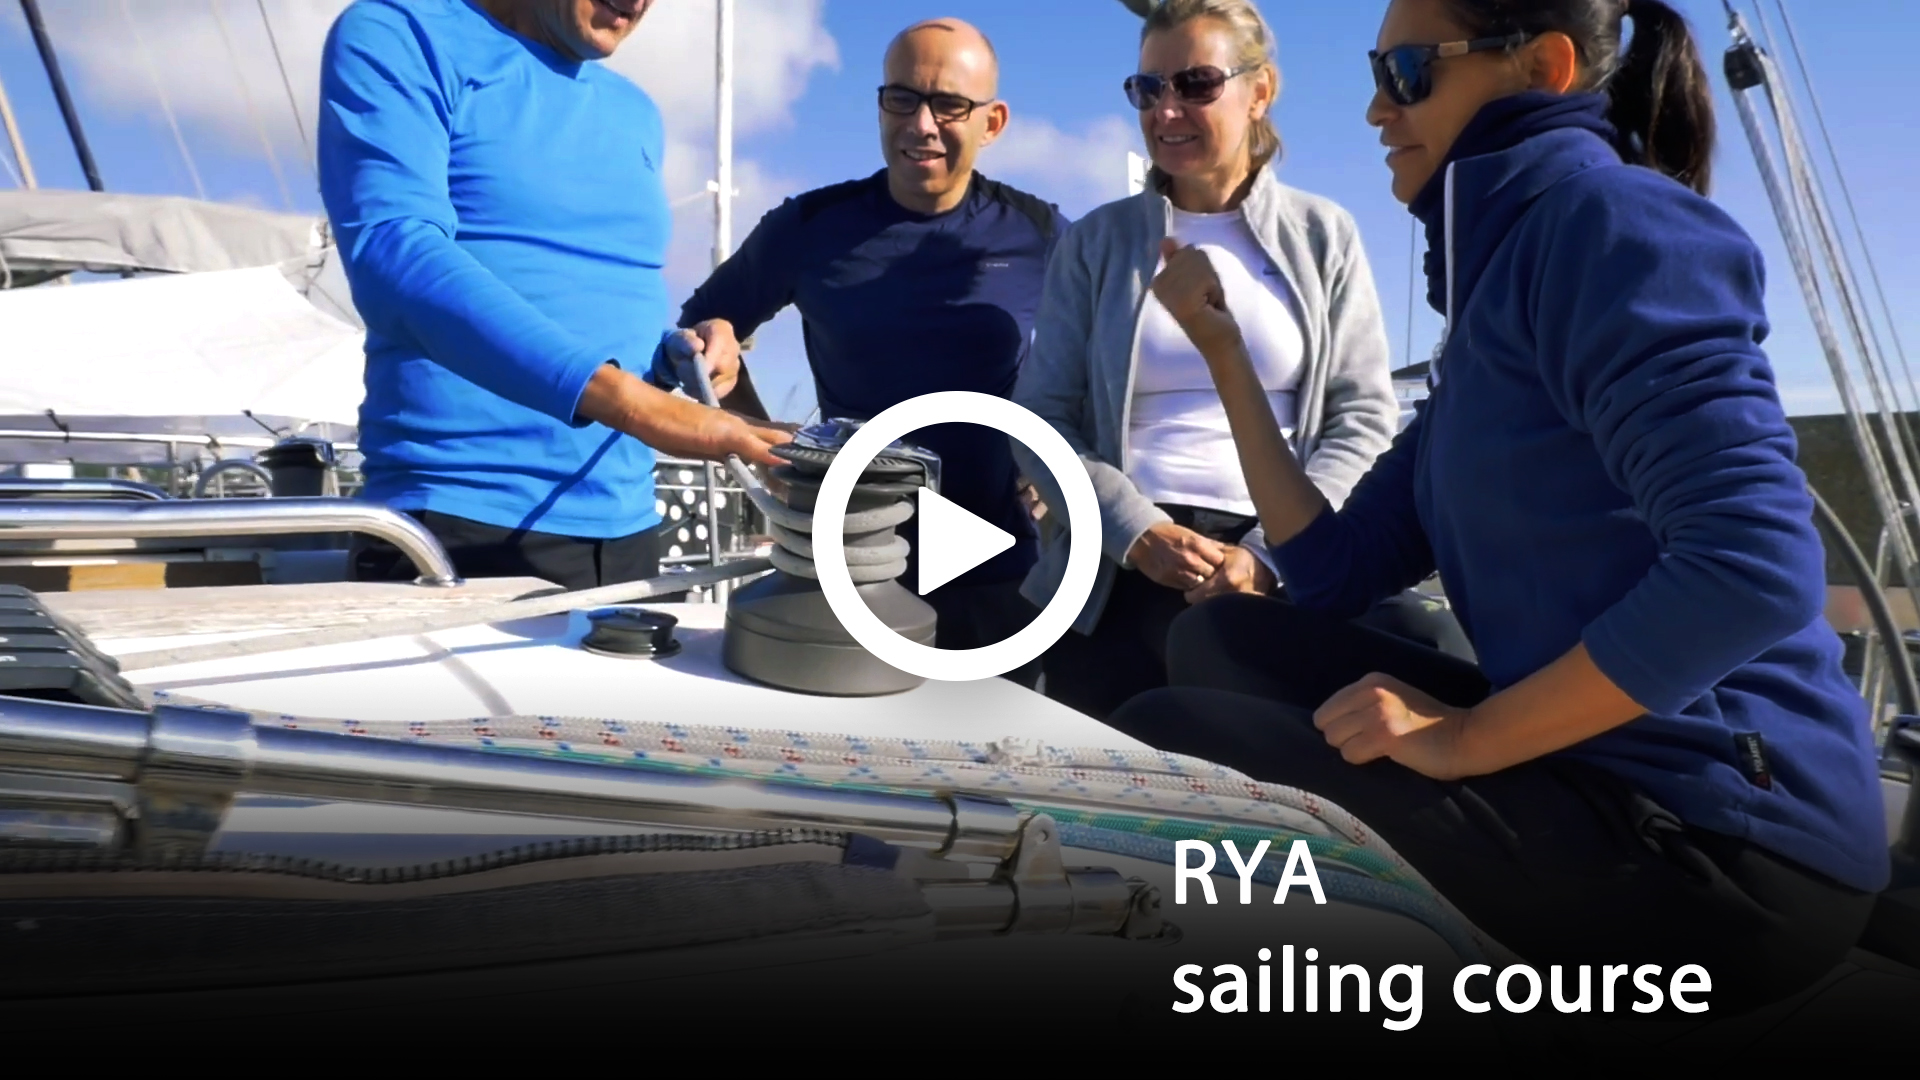 Sailing video to sale - RYA sailing course with Safe Sailing